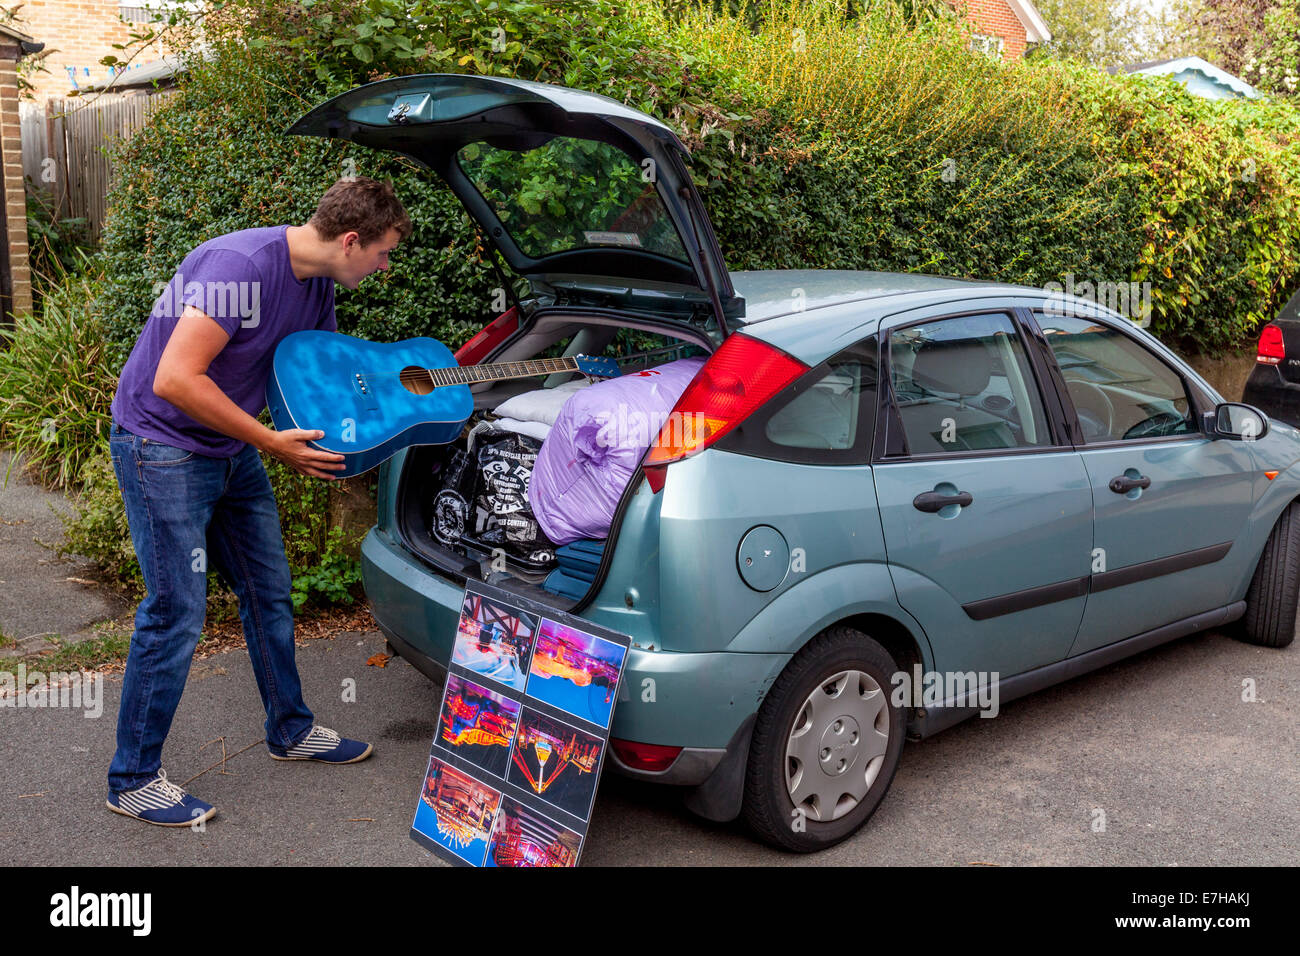 Off To University, A Student Prepares To Leave Home In Sussex To Go To University In Canterbury, England - Stock Image